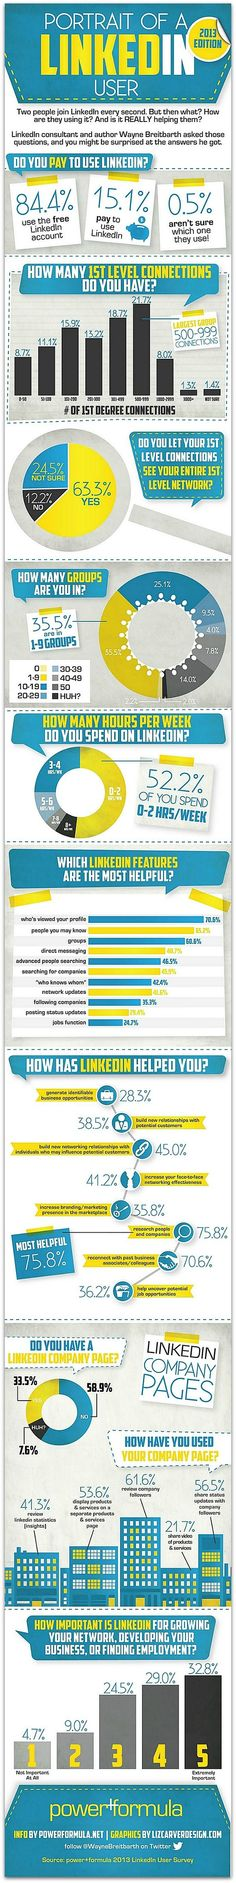 Infographic: The most-popular ways people use LinkedIn